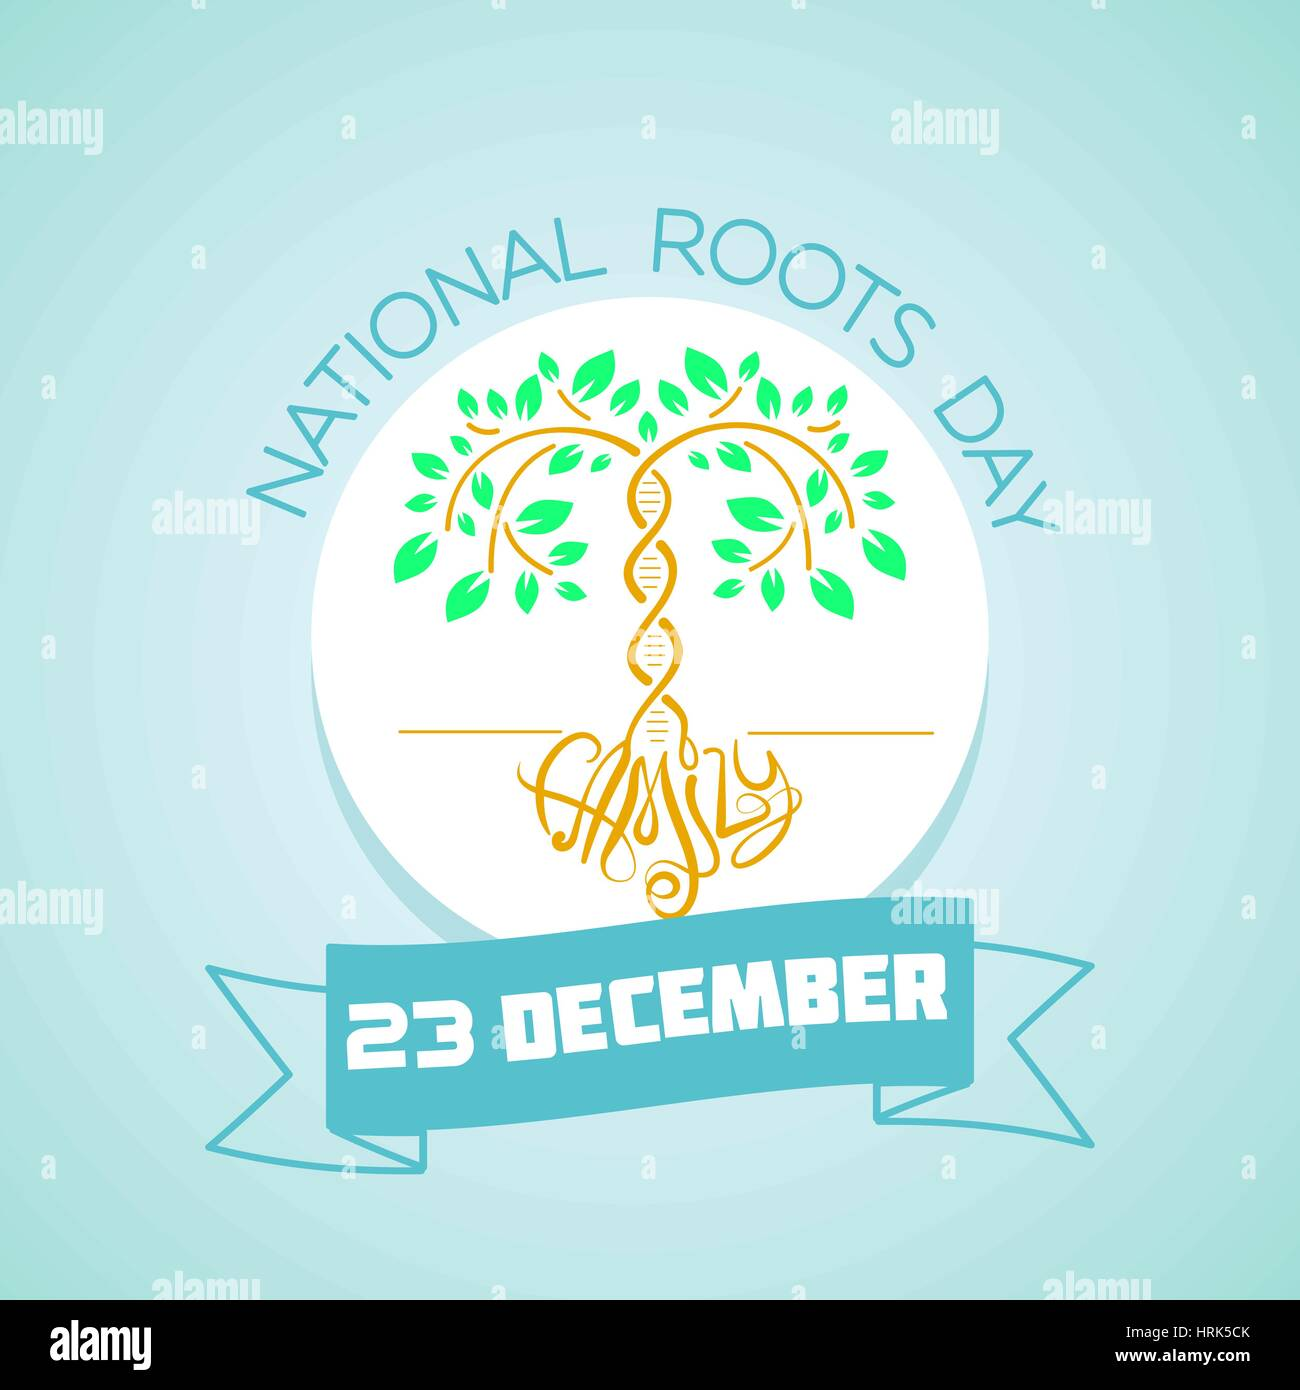 Calendar for each day on December 23. Greeting card. Holiday - National Roots Day. Icon in the linear style - Stock Image